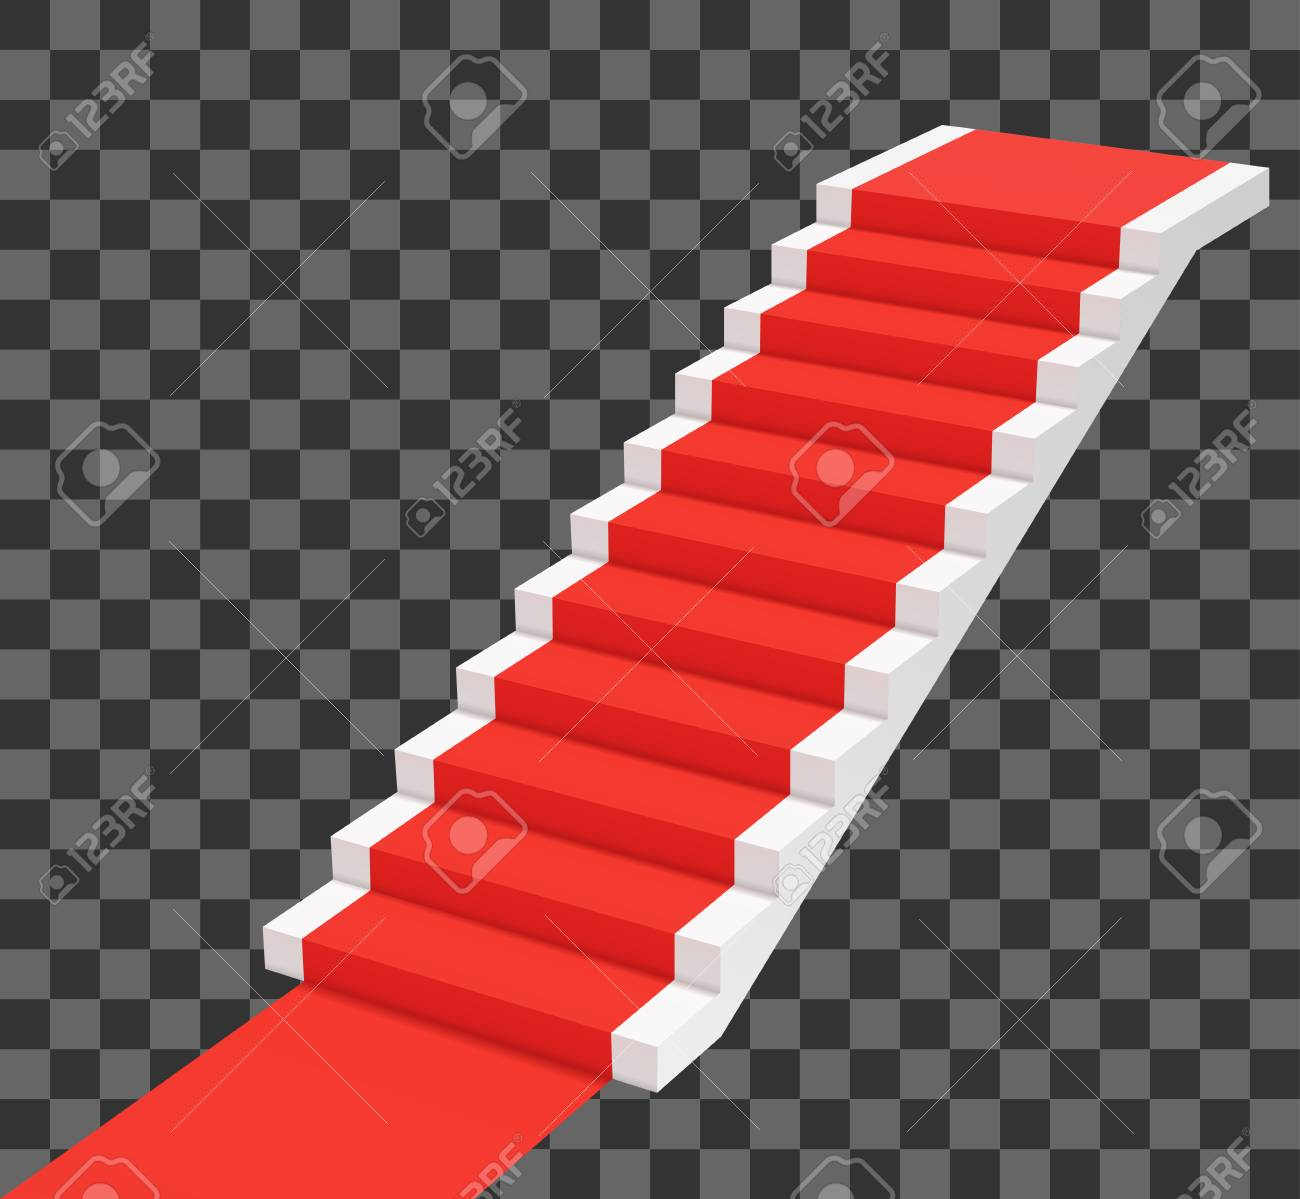 Red carpet on white stairs. Perspective view vector illustration - 122575355